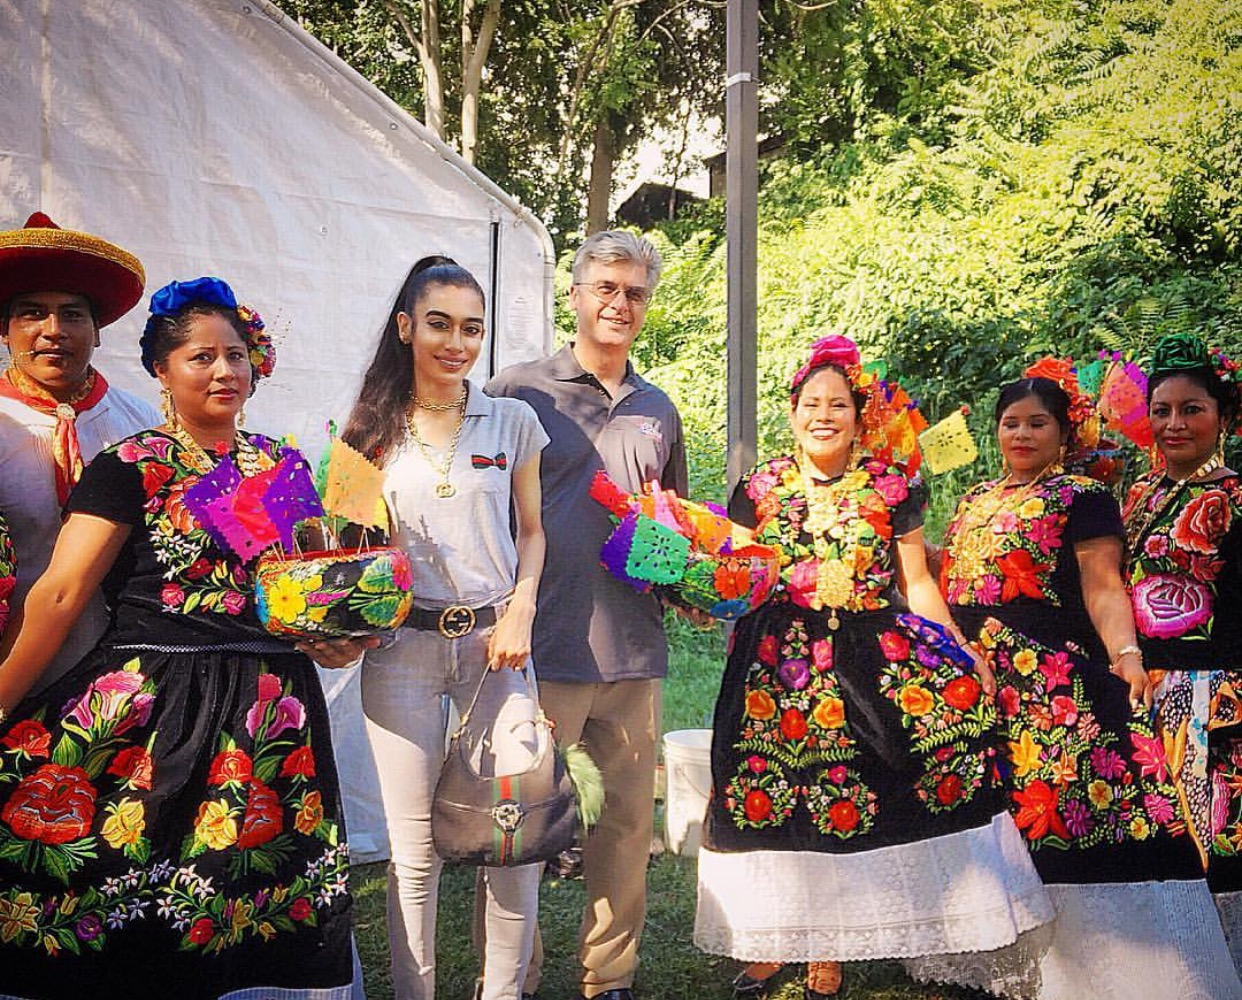 """VIVA MÉXICO Y MUCHAS GRACIAS! Thank you SO MUCH to the Mexican-American community of New York State for having me at LA GUELAGUETZA Mexican Heritage Festival 2016! I'm pictured alongside Orange County Legislator (District 15) Christopher W. Eachus, as I am a young United Nations Ambassador serving the National Council Of Women Of The United States, the oldest women's organization in the country. I WAS PROUD TO STAND WITH MANY DECORATED COMMUNITY LEADERS/PUBLIC FIGURES TO RECOGNIZE & CELEBRATE THE IMPORTANCE & THE GREAT CONTRIBUTIONS OF MEXICO & THOSE OF MEXICAN HERITAGE not only to the world at large but to the United States DIRECTLY!!! From the wondrous Mayan Empire & its innovations to the rich cultural heritage of Mexico, they have been a force since the dawn of modern man. Although some """"politicians"""" have unfortunately made grossly incorrect & irresponsible statements regarding Mexico & those of Mexican descent, NOT ALL OF US WITH A PLATFORM ARE SO IGNORANT! THE UNITED STATES ITSELF WAS BUILT OFF THE SACRIFICES & ACCOMPLISHMENTS OF THE MEXICAN COMMUNITY INCLUDING THEIR OWN LAND AS MOST OF THE WESTERN UNITED STATES WAS ANNEXED FROM MEXICO! MEXICAN HISTORY IS AMERICAN HISTORY & WE DON'T NEED TO """"MAKE AMERICA GREAT AGAIN"""" WE CAN CONTINUE TO WORK TOGETHER TOWARDS A BRIGHT FUTURE AS IT IS ALREADY GREAT THANKS TO THE CONTRIBUTIONS OF MEXICO & THOSE OF MEXICAN HERITAGE! WE SALUTE THE MEXICAN COMMUNITY FROM ALL ETHNICITIES & WALKS OF LIFE AS WE COME TOGETHER TO SAY MUCHAS GRACIAS Y VIVA MÉXICO! AMO A LOS MEXICANOS! BESITOS, FAFA 🇲🇽❤️🌹"""